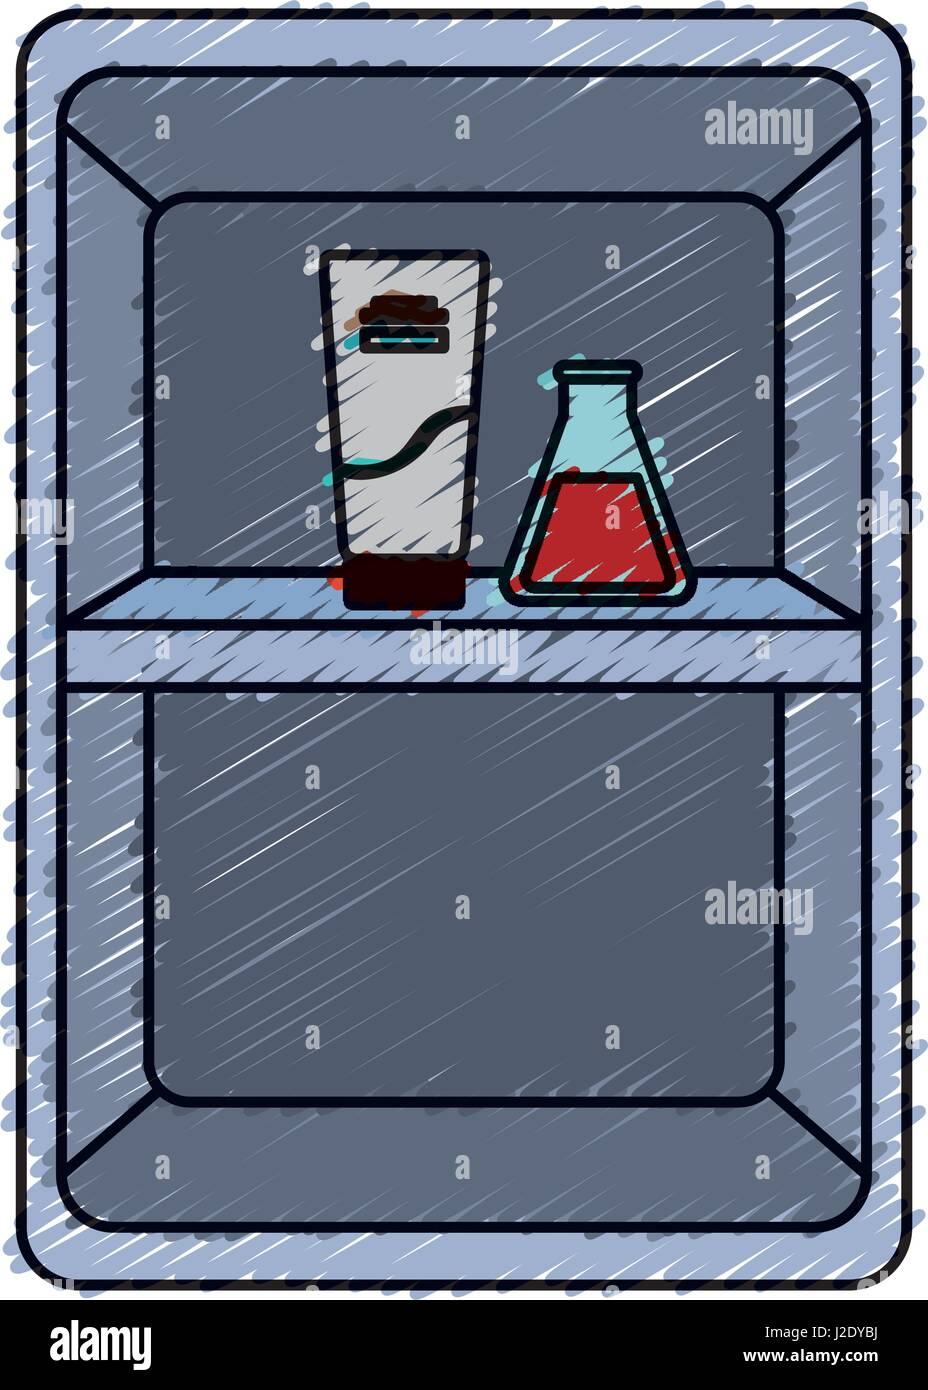 Photo De Cabinet Medical cabinet medical isolated icon stock vector art